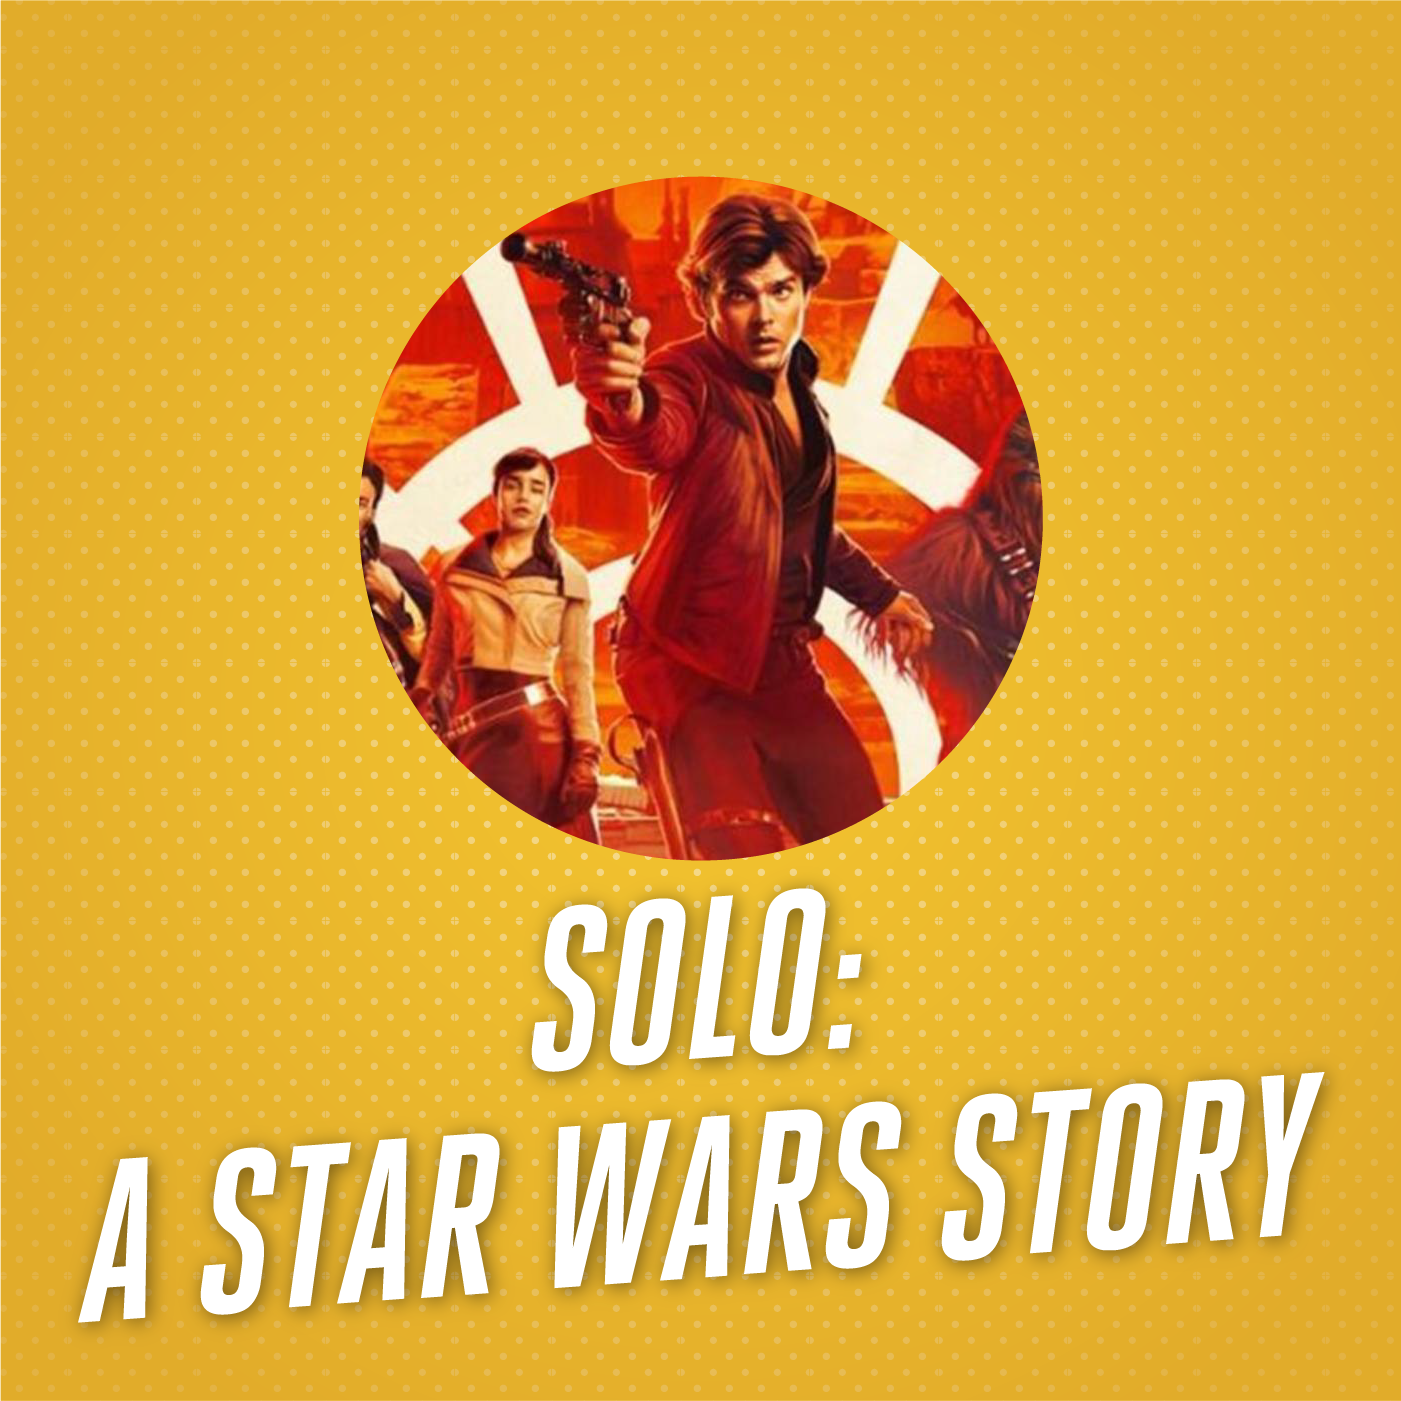 Solo A Star Wars Story.png